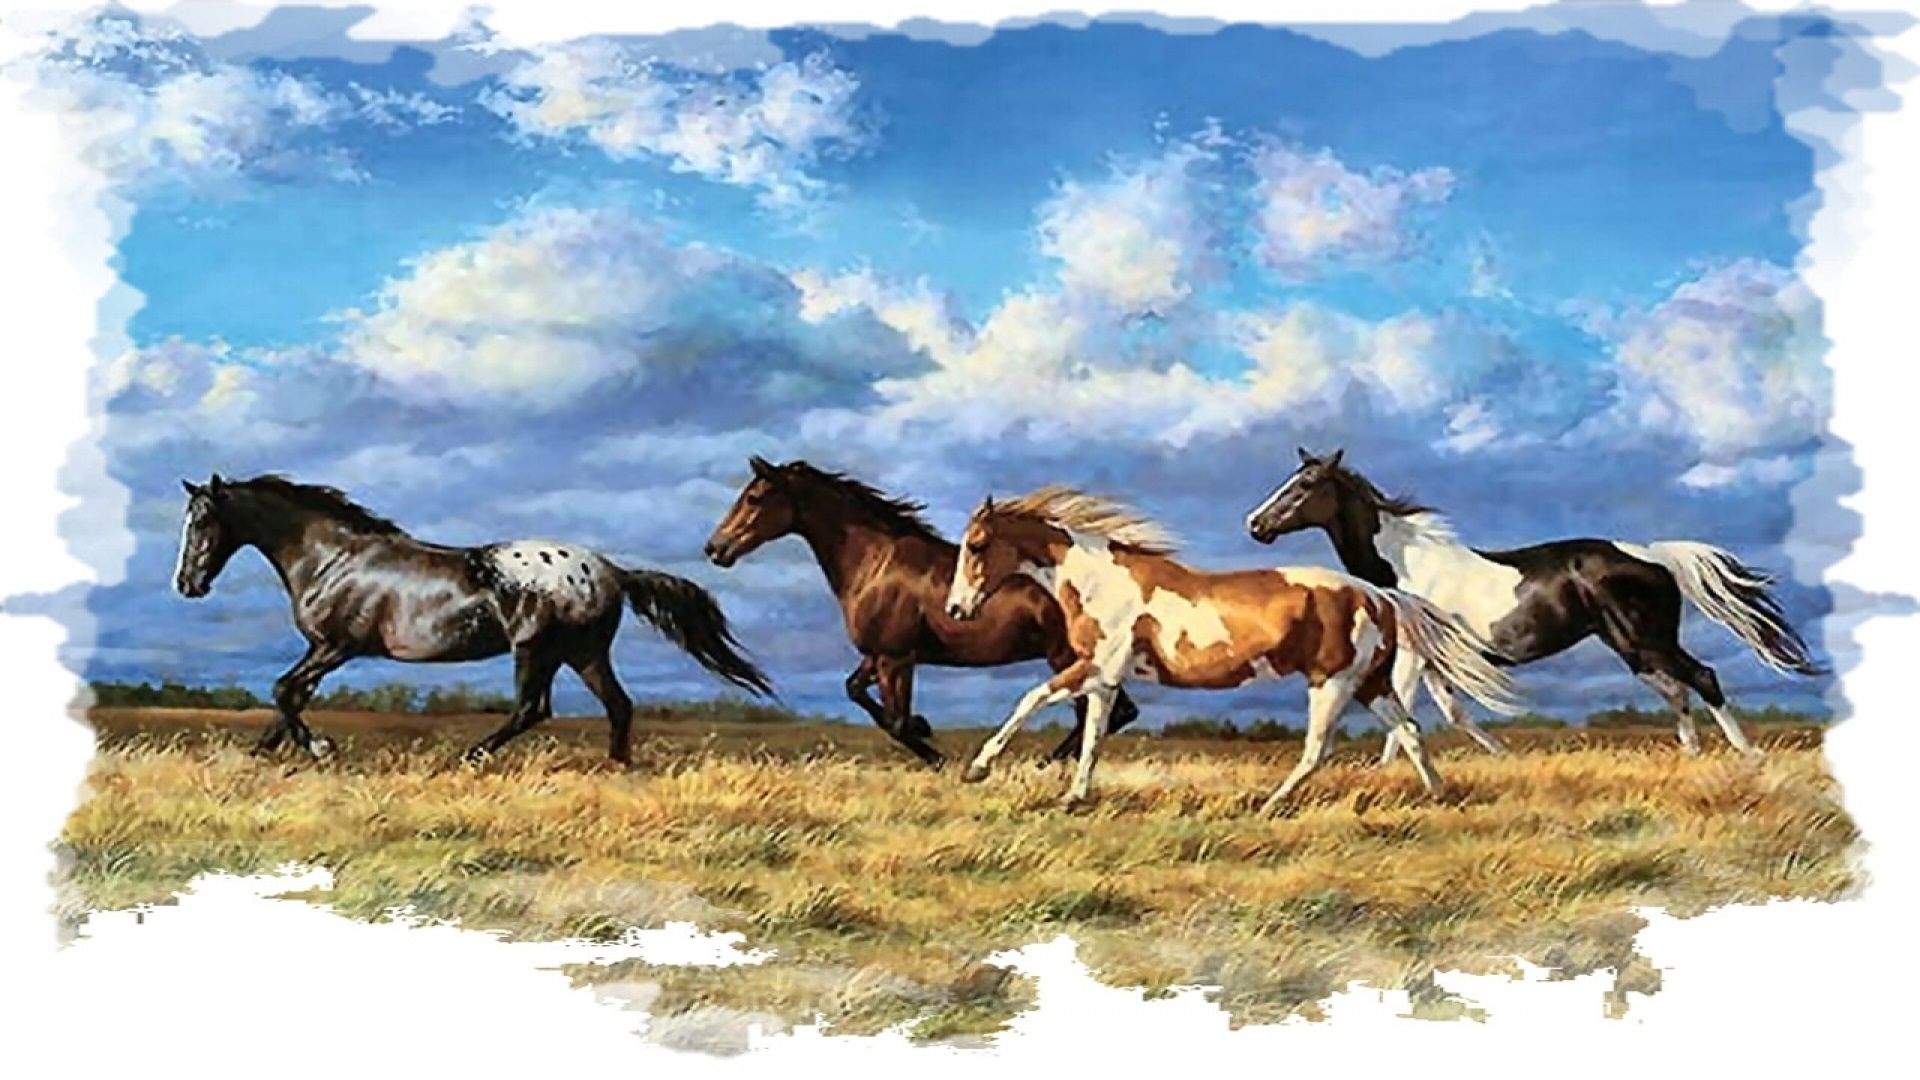 Seven Horse Hd Wallpaper 34 Find Hd Wallpapers For Running